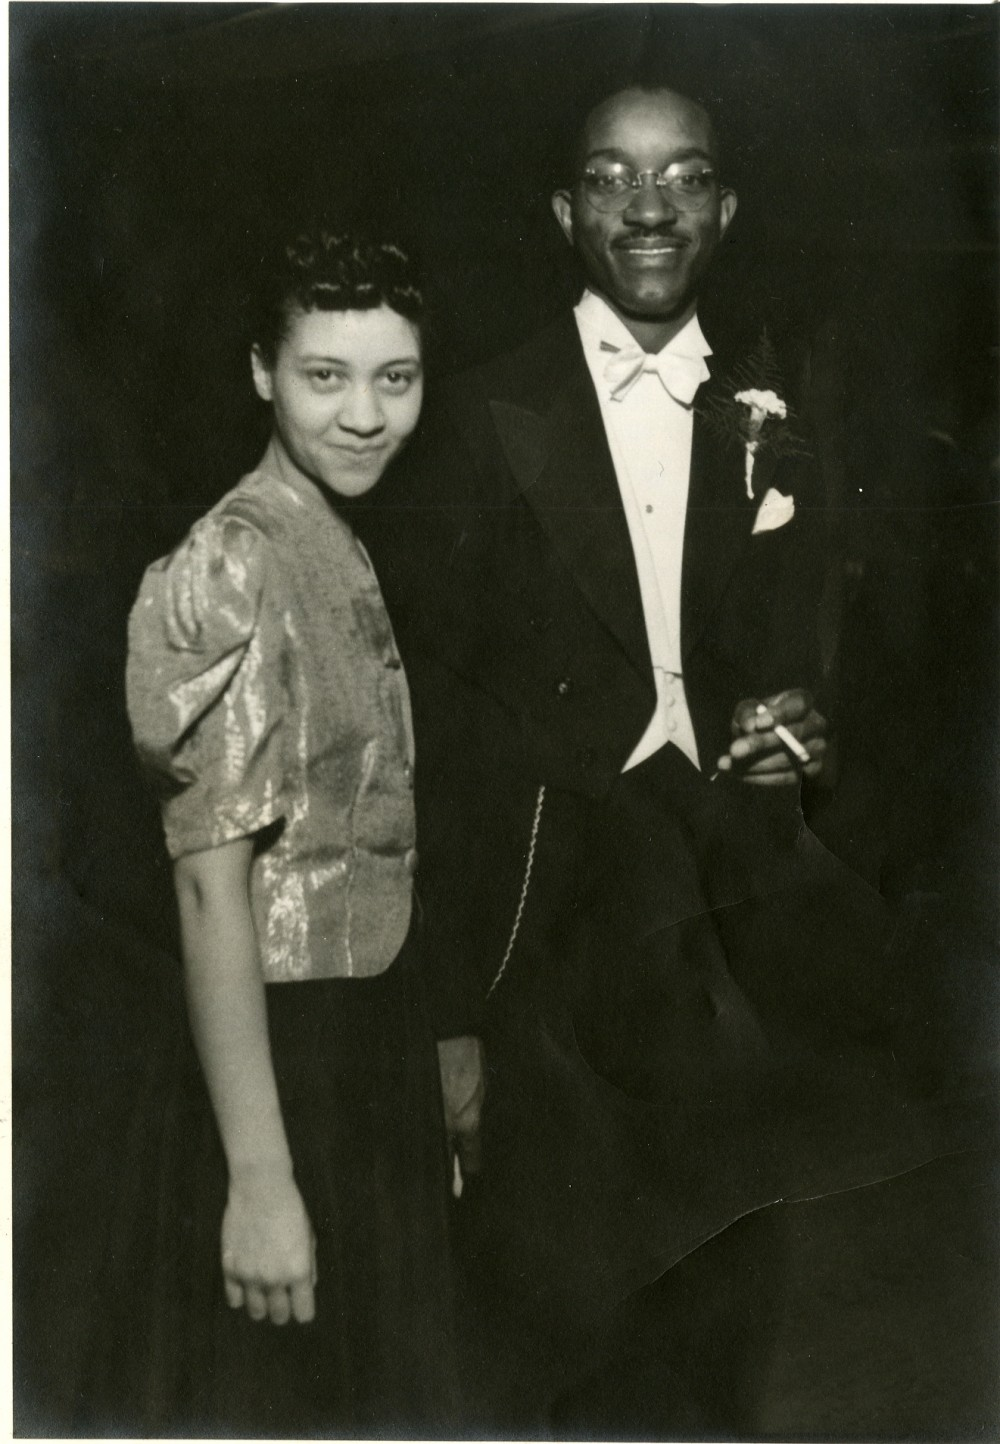 John Hope and Aurelia Franklin attend a banquet in Durham, NC, 1940s